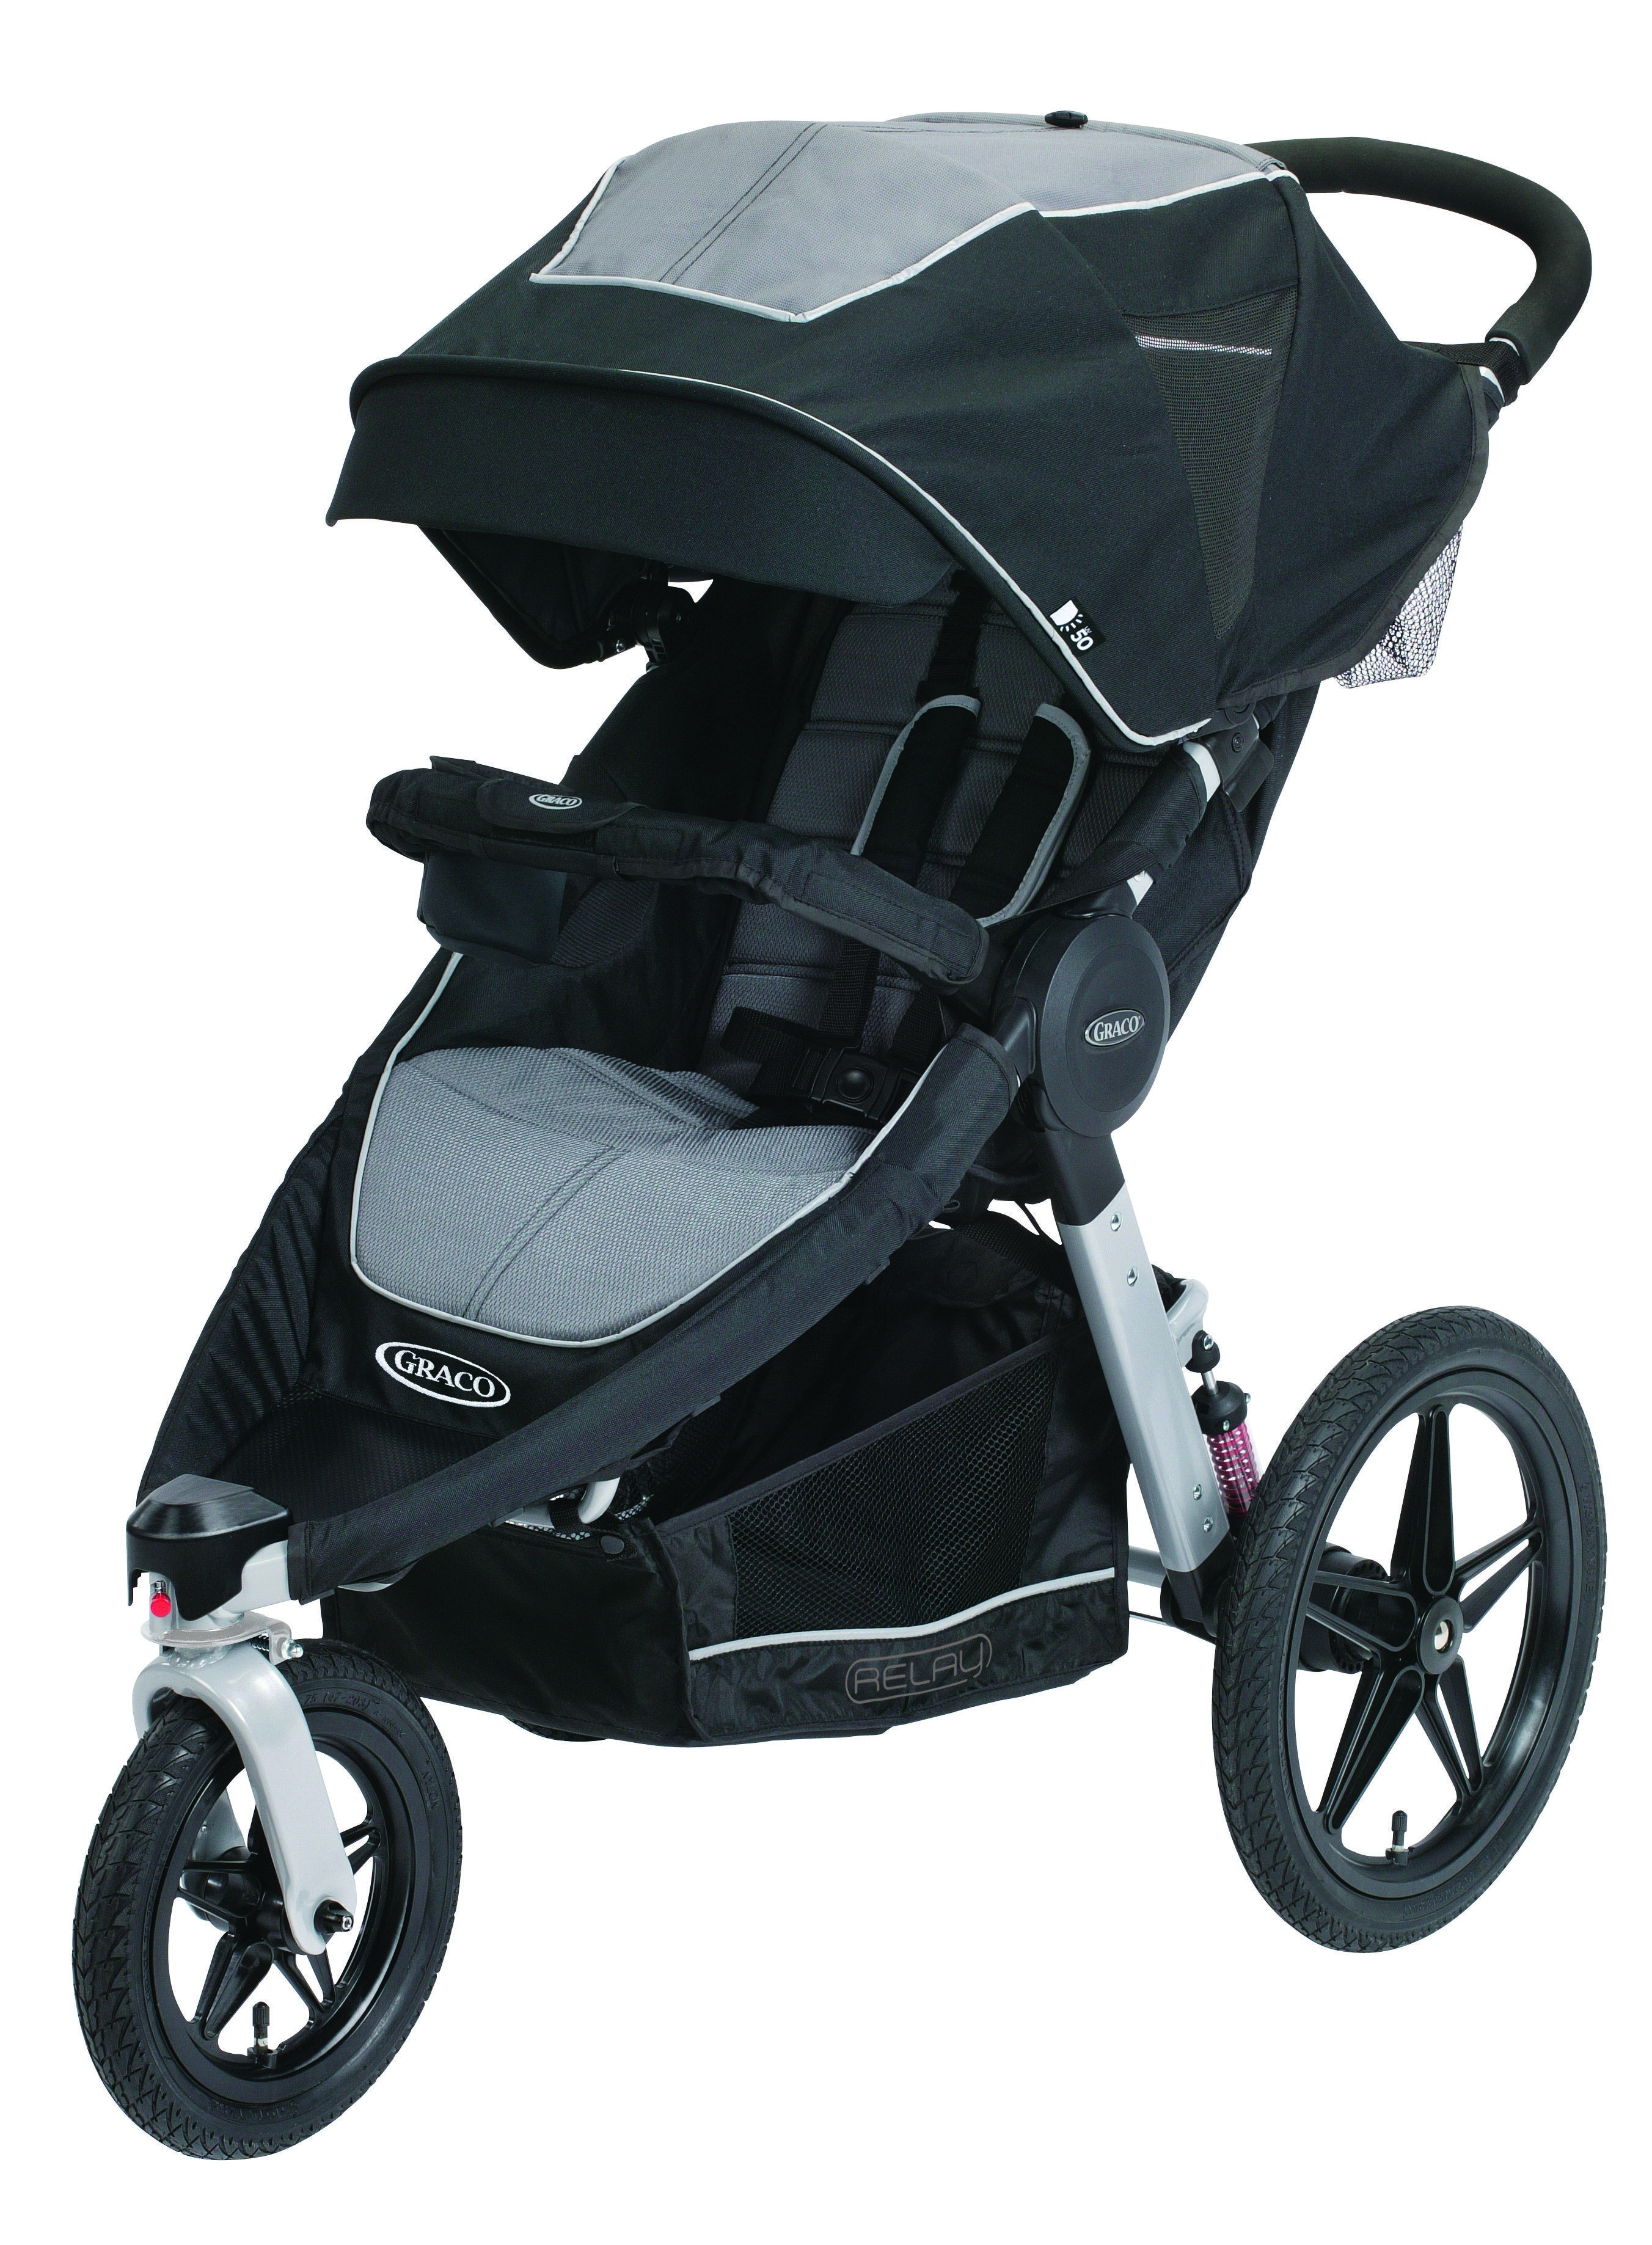 Graco Relay stroller in Panther, with all accessories